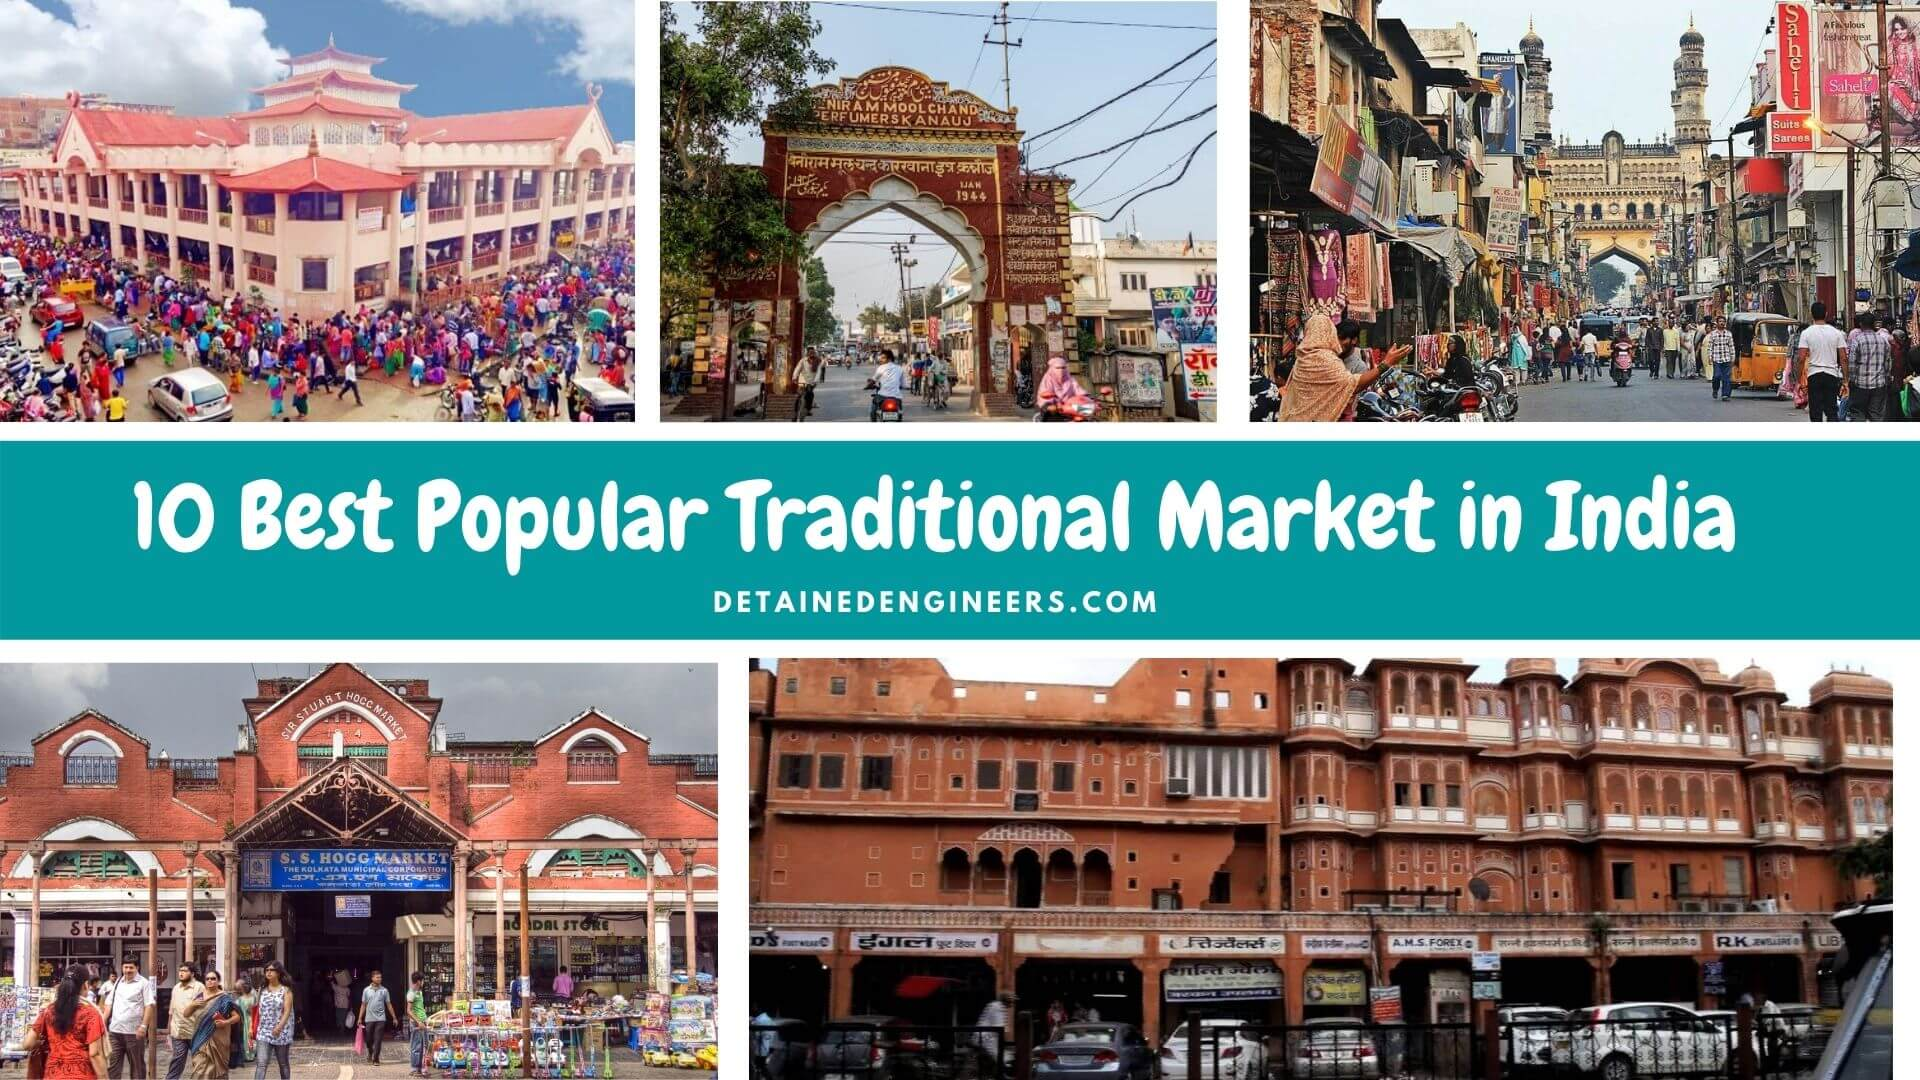 10 Best Popular Traditional Market in India